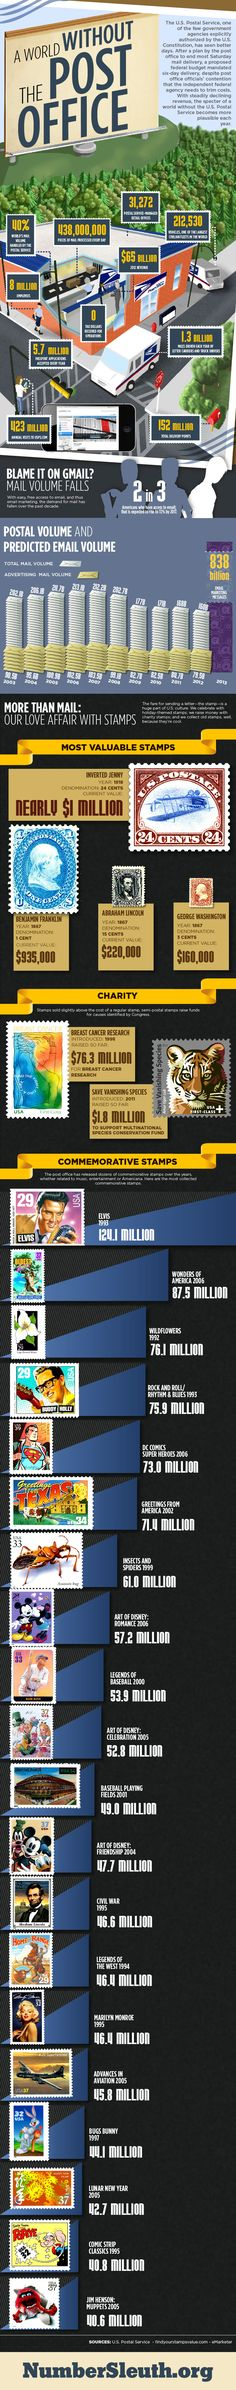 With steadily declining revenue, the specter of a world without the U.S. Postal…